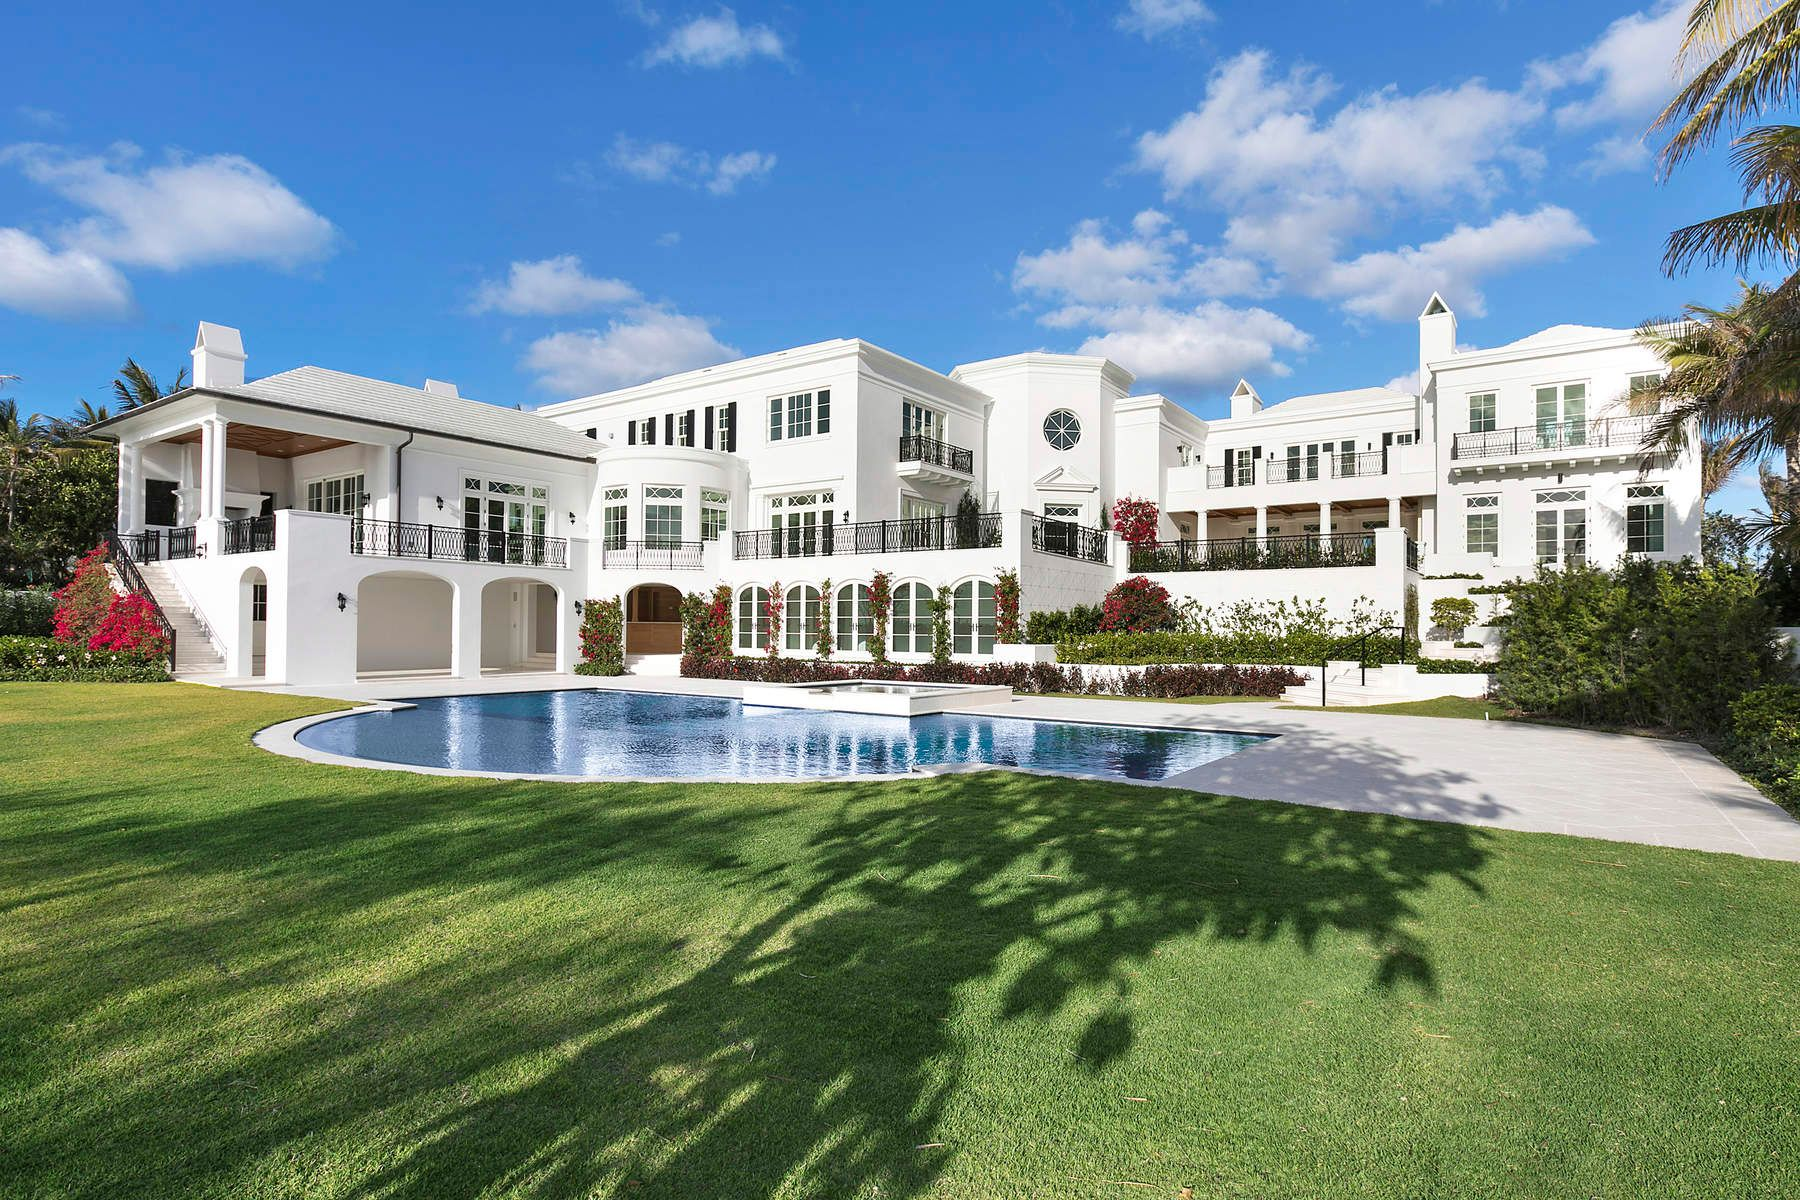 Maison unifamiliale pour l Vente à Ocean To Intracoastal Estate Palm Beach, Florida 33480 États-Unis